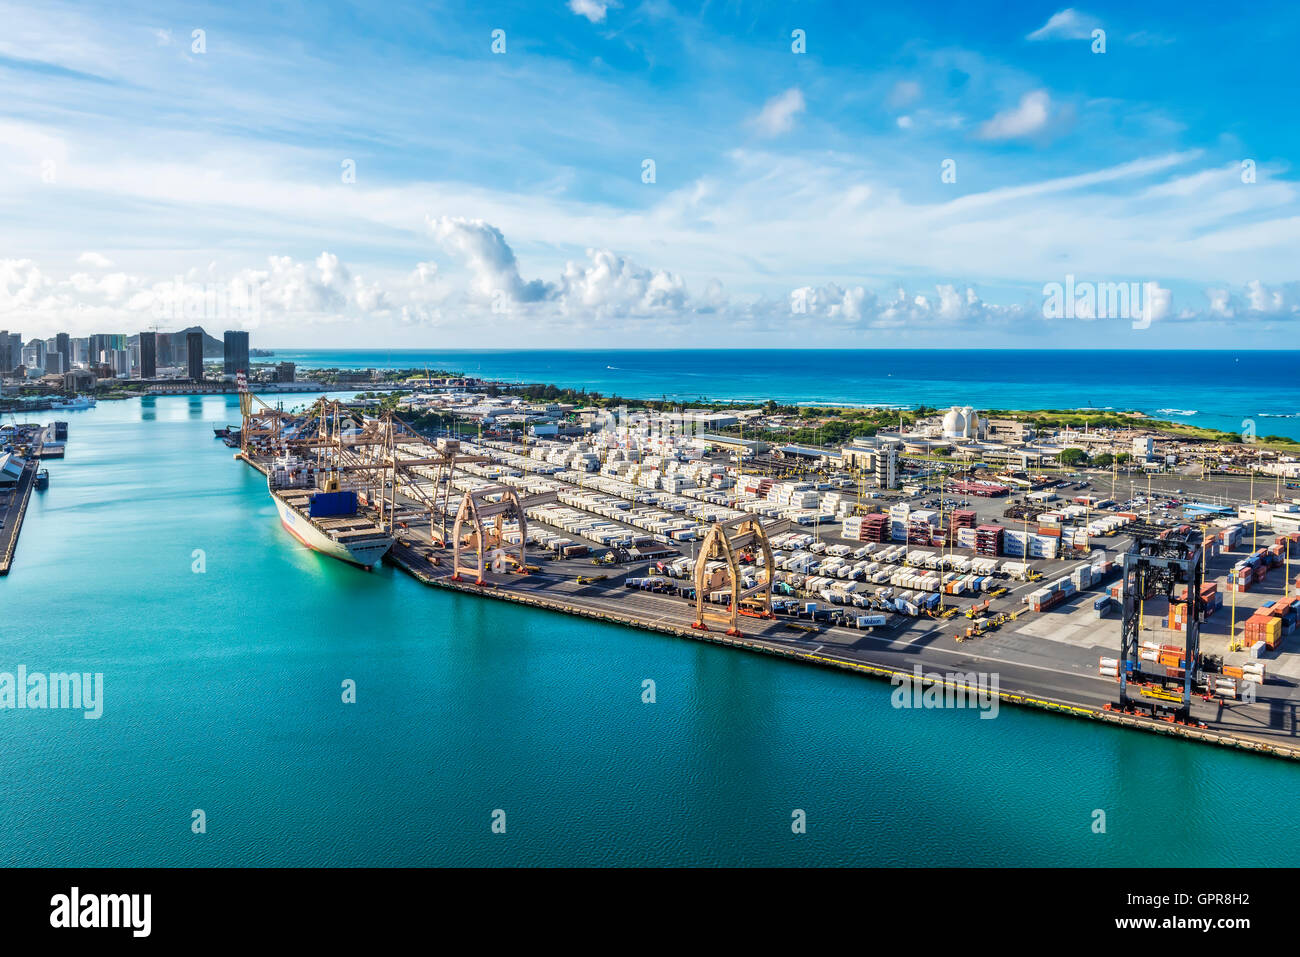 Port Of Honolulu >> Aerial View Of Container Area In Port Of Honolulu Oahu Hawaii Usa